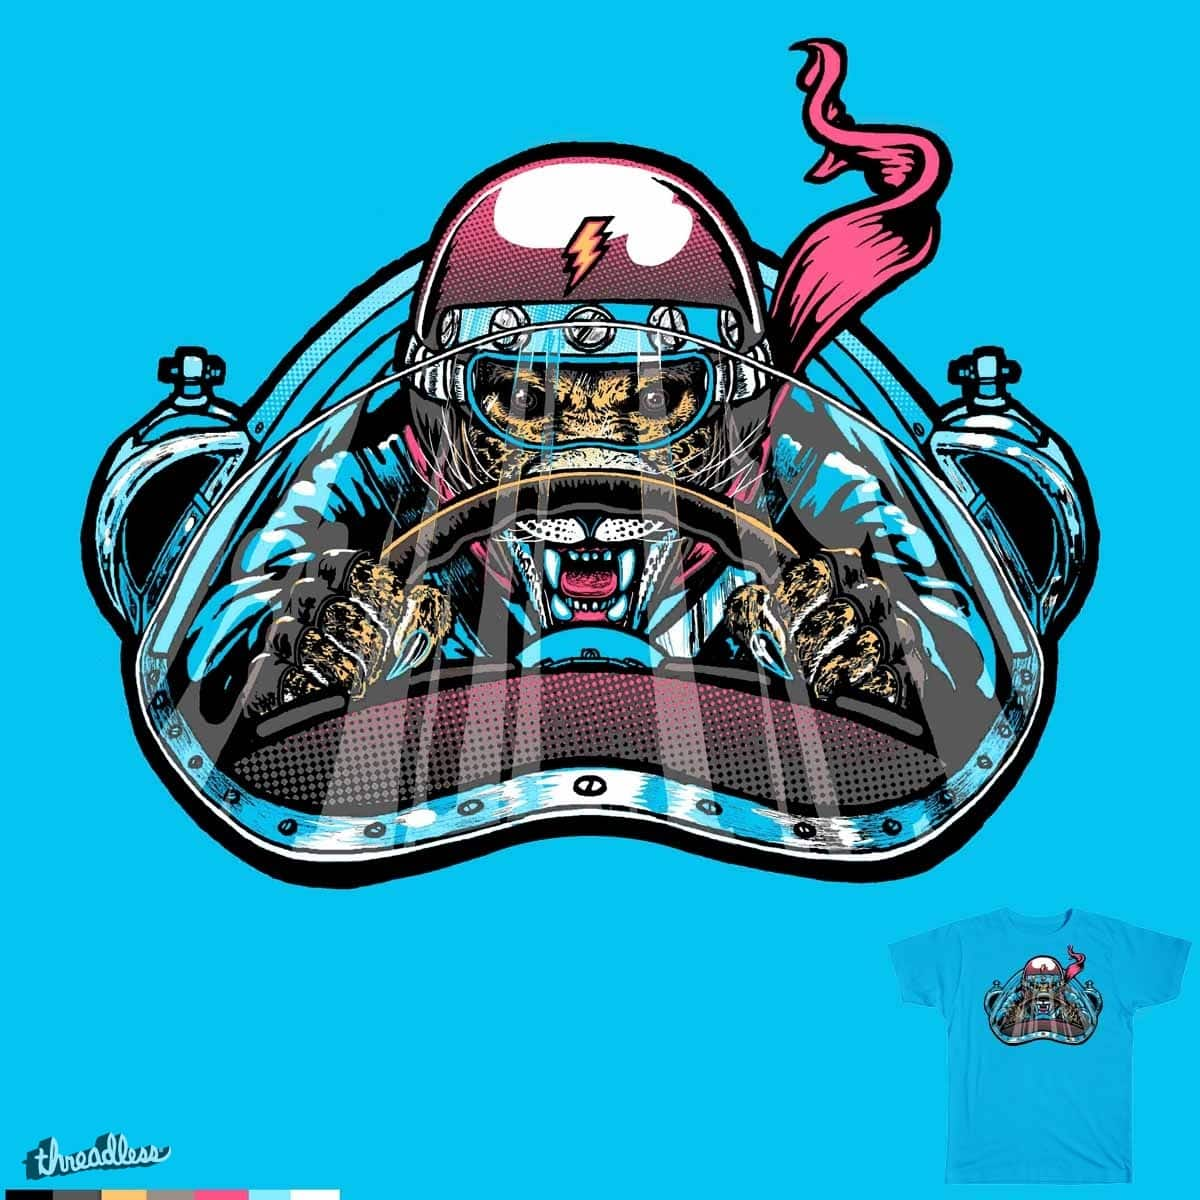 Need For Speed by goliath72 and choubaka360 on Threadless